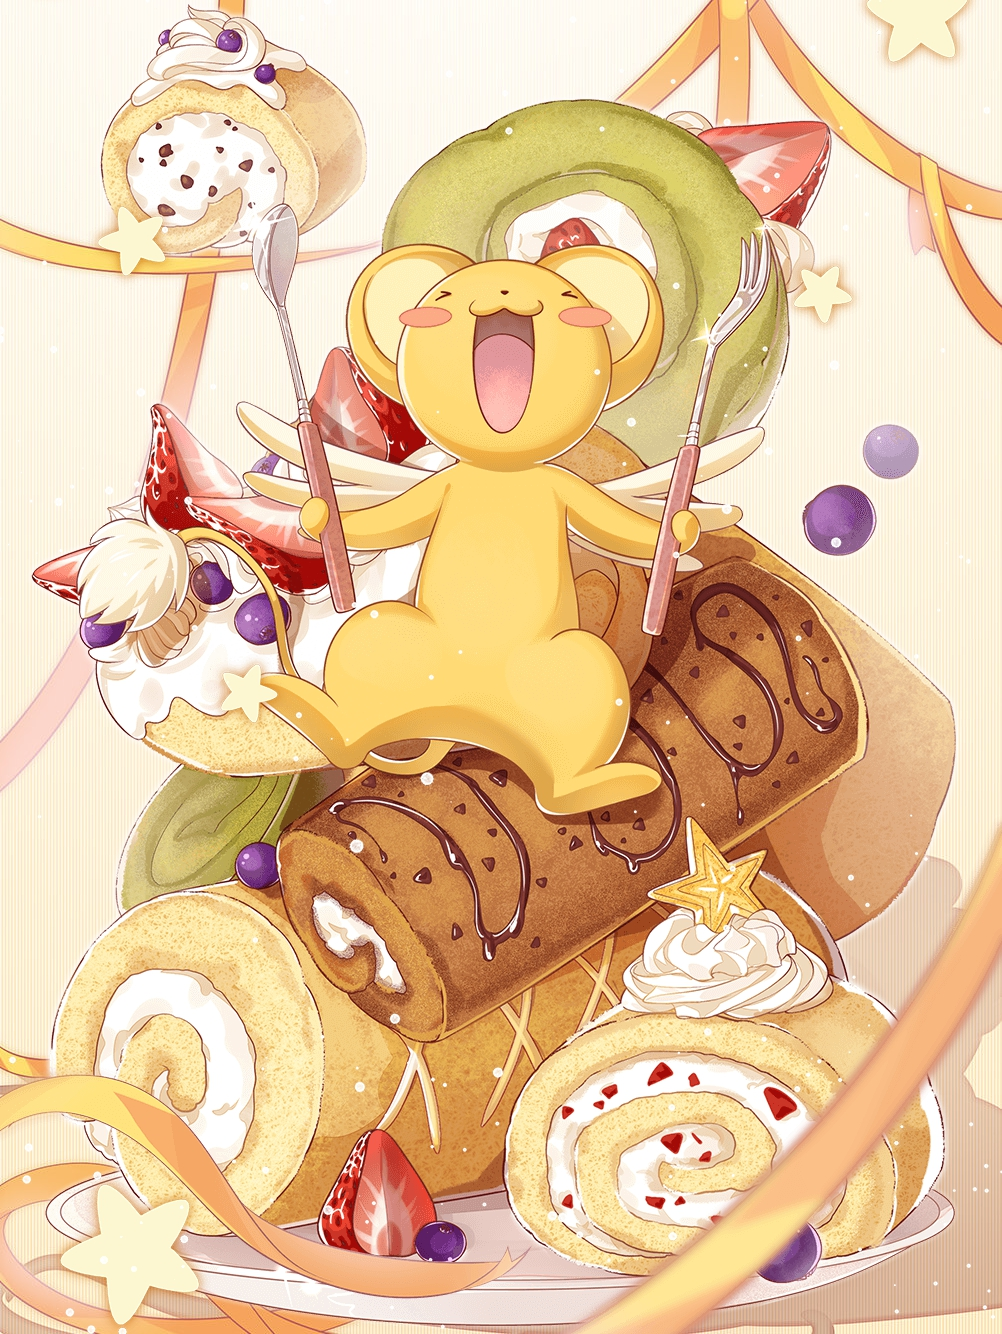 Swiss Roll (Kero)